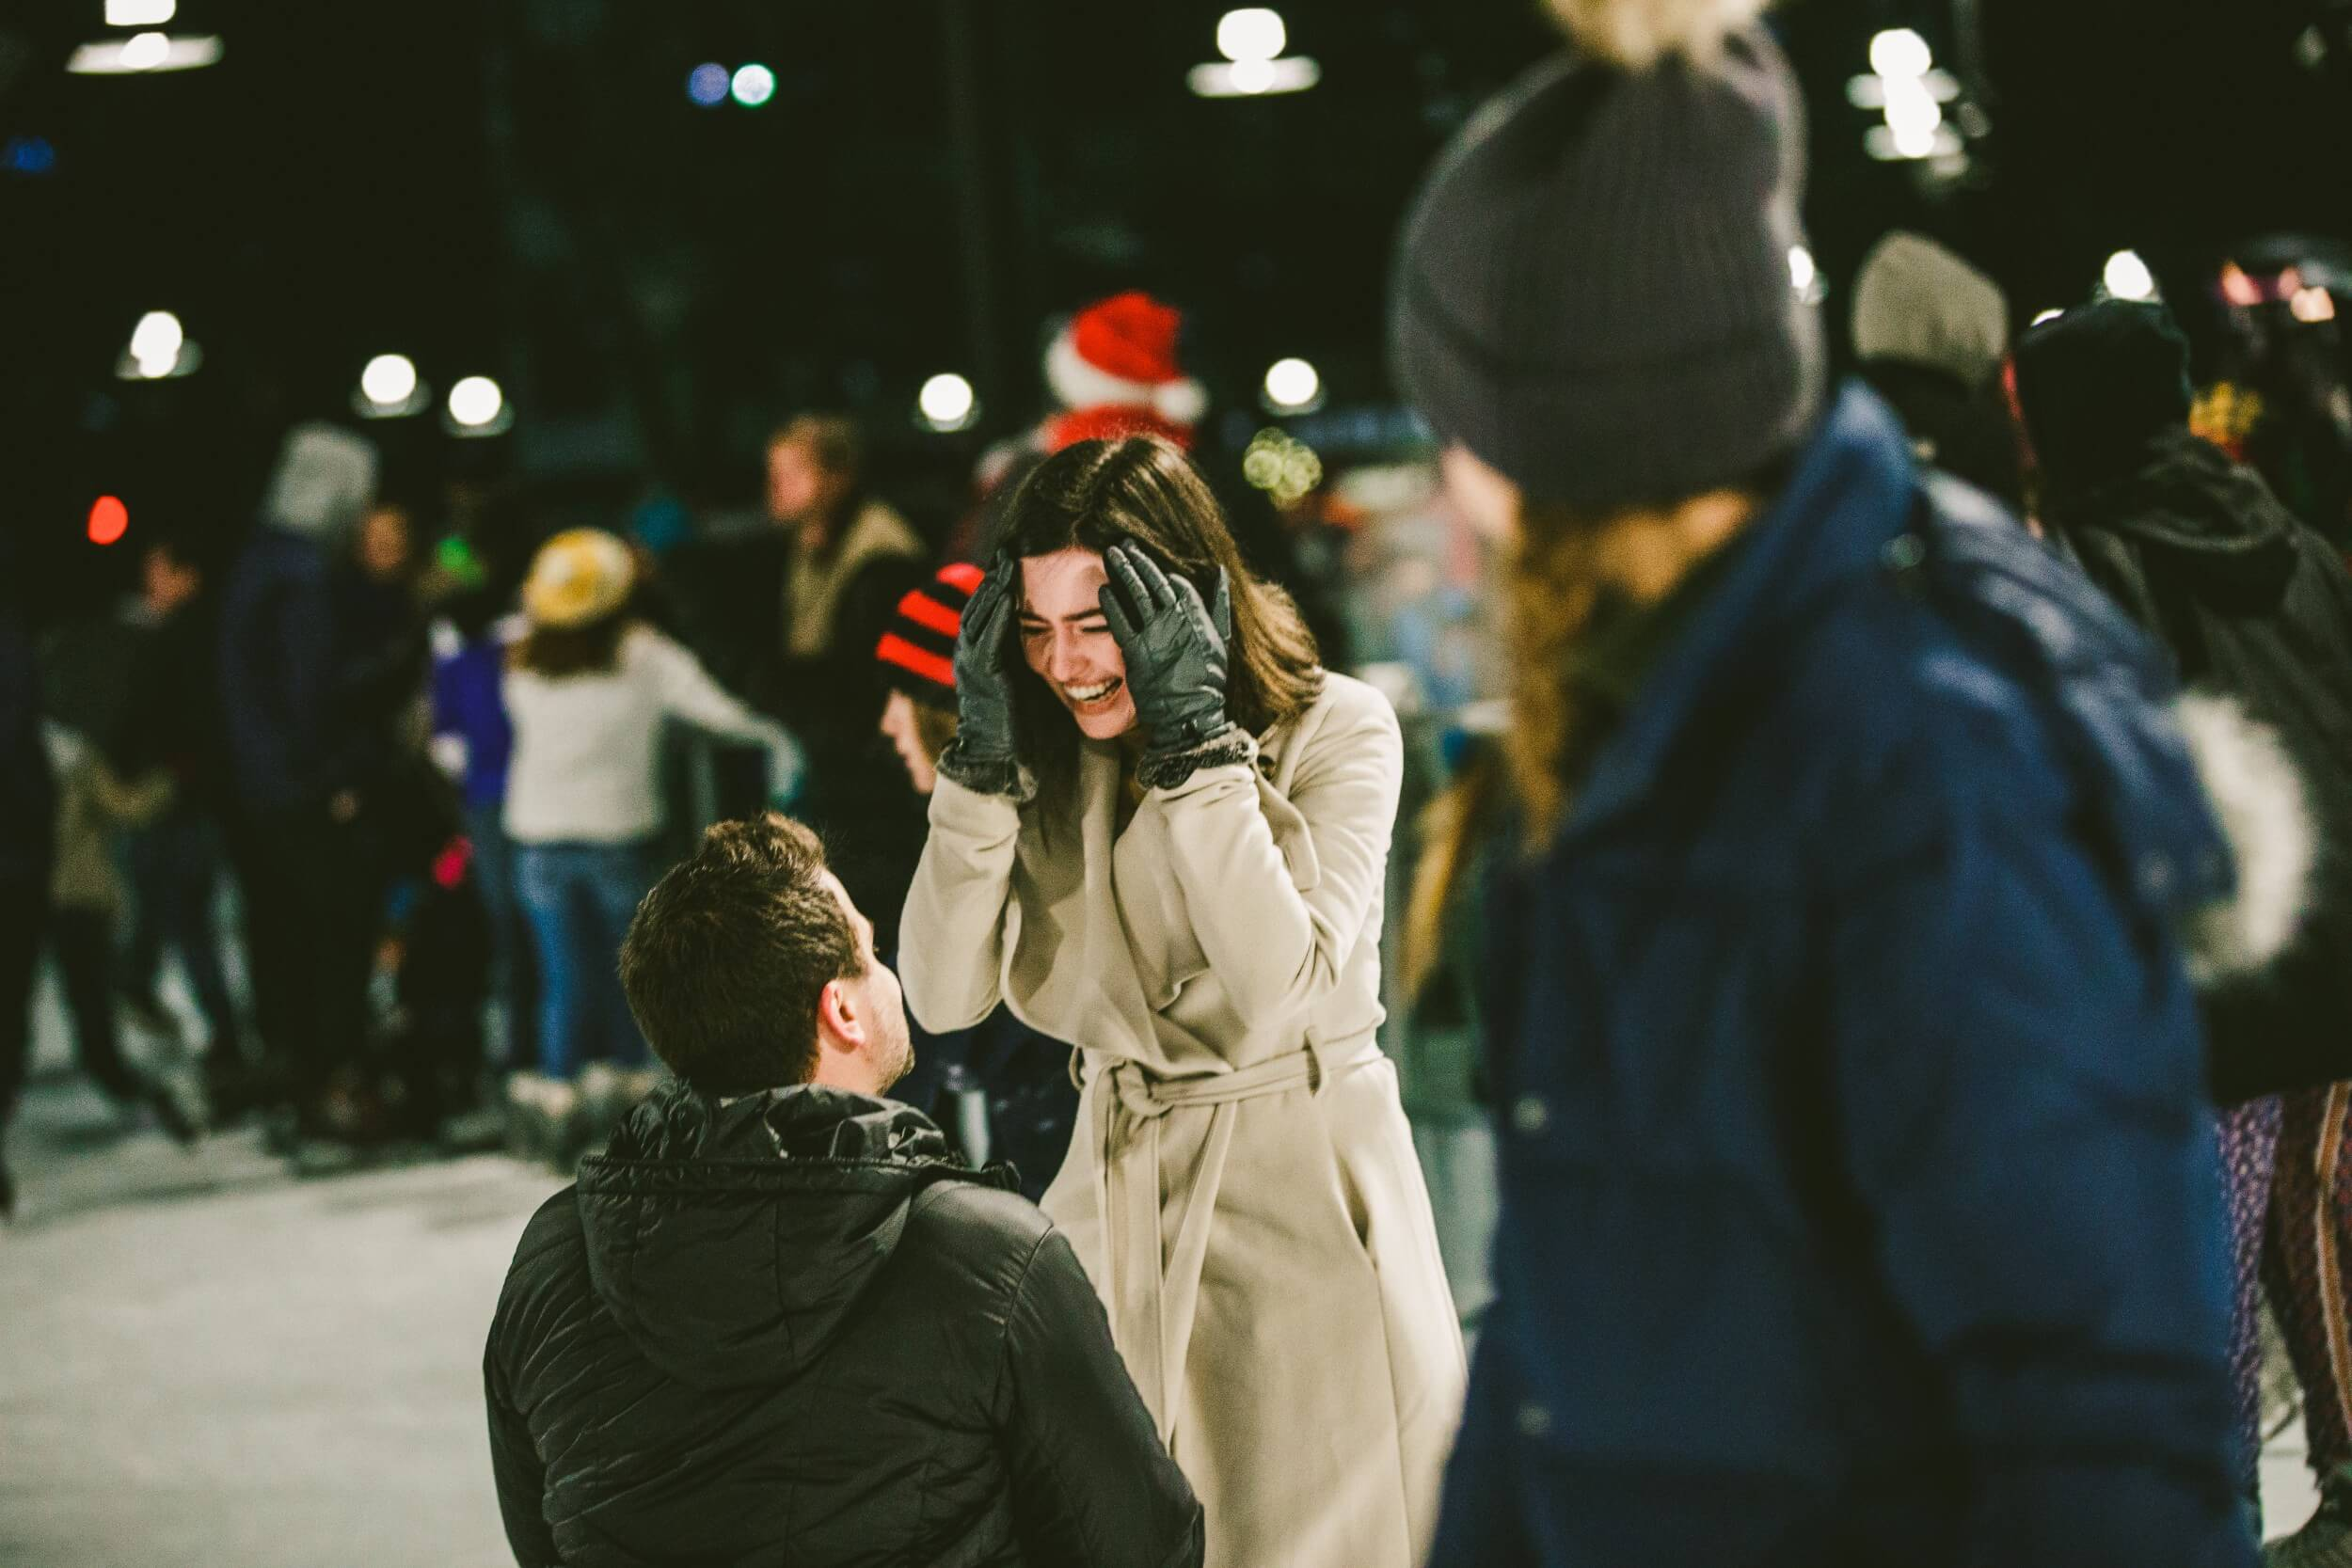 Ice Ribbon suprise proposal spokane (22).jpg